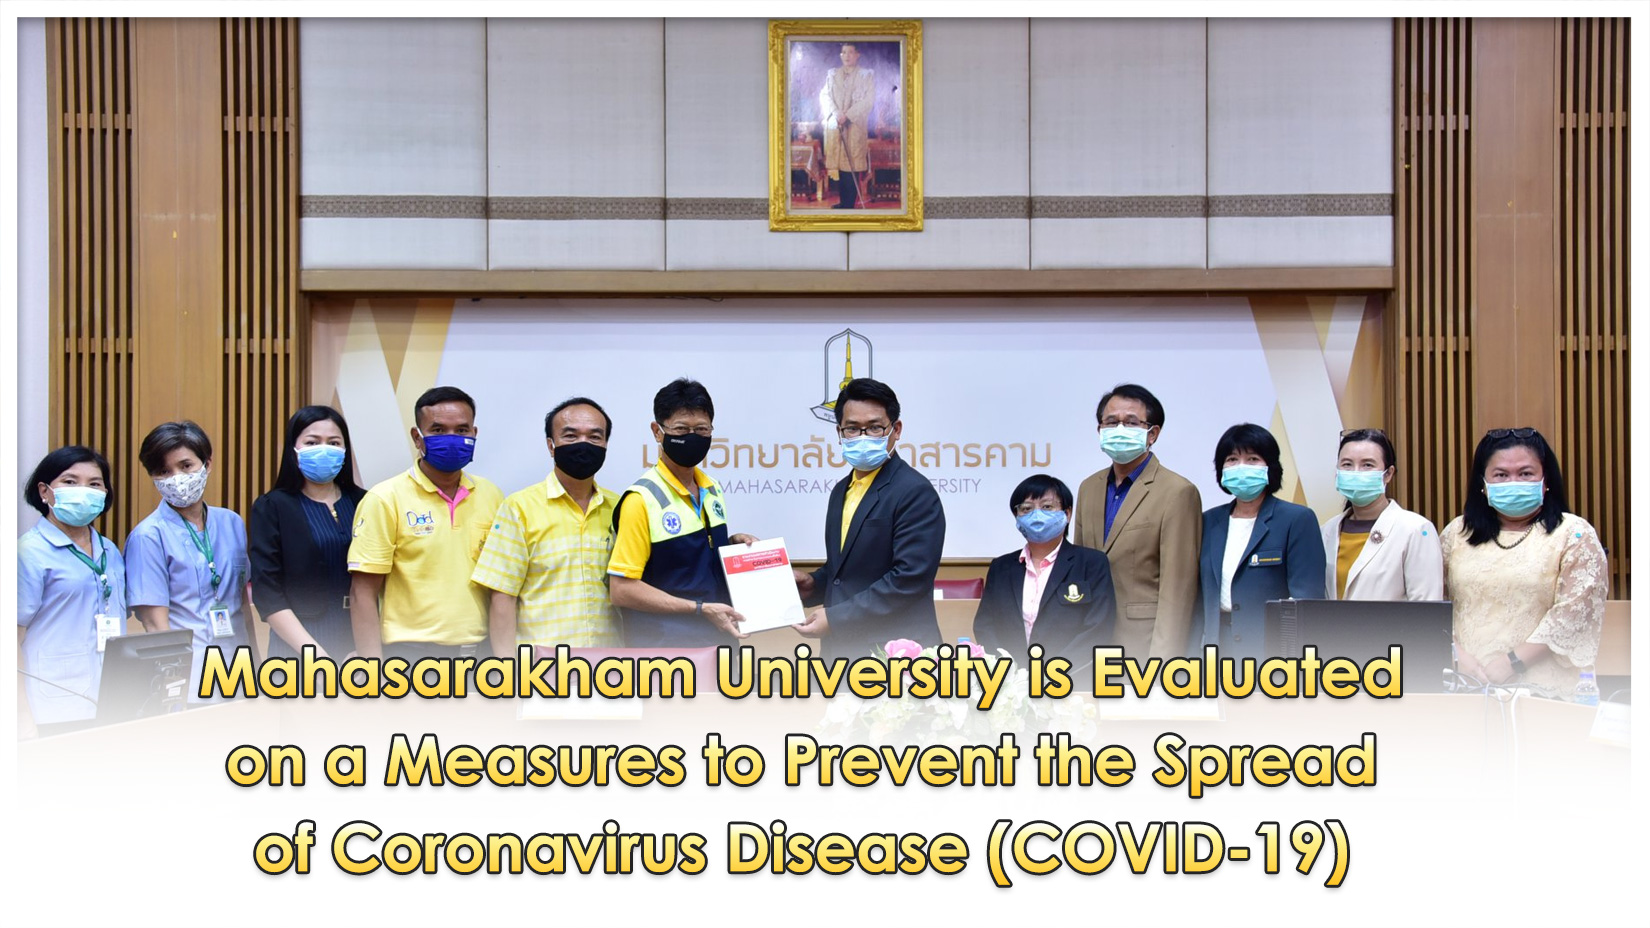 Mahasarakham University is Evaluated on a Measures to Prevent the Spread of Coronavirus Disease (COVID-19).